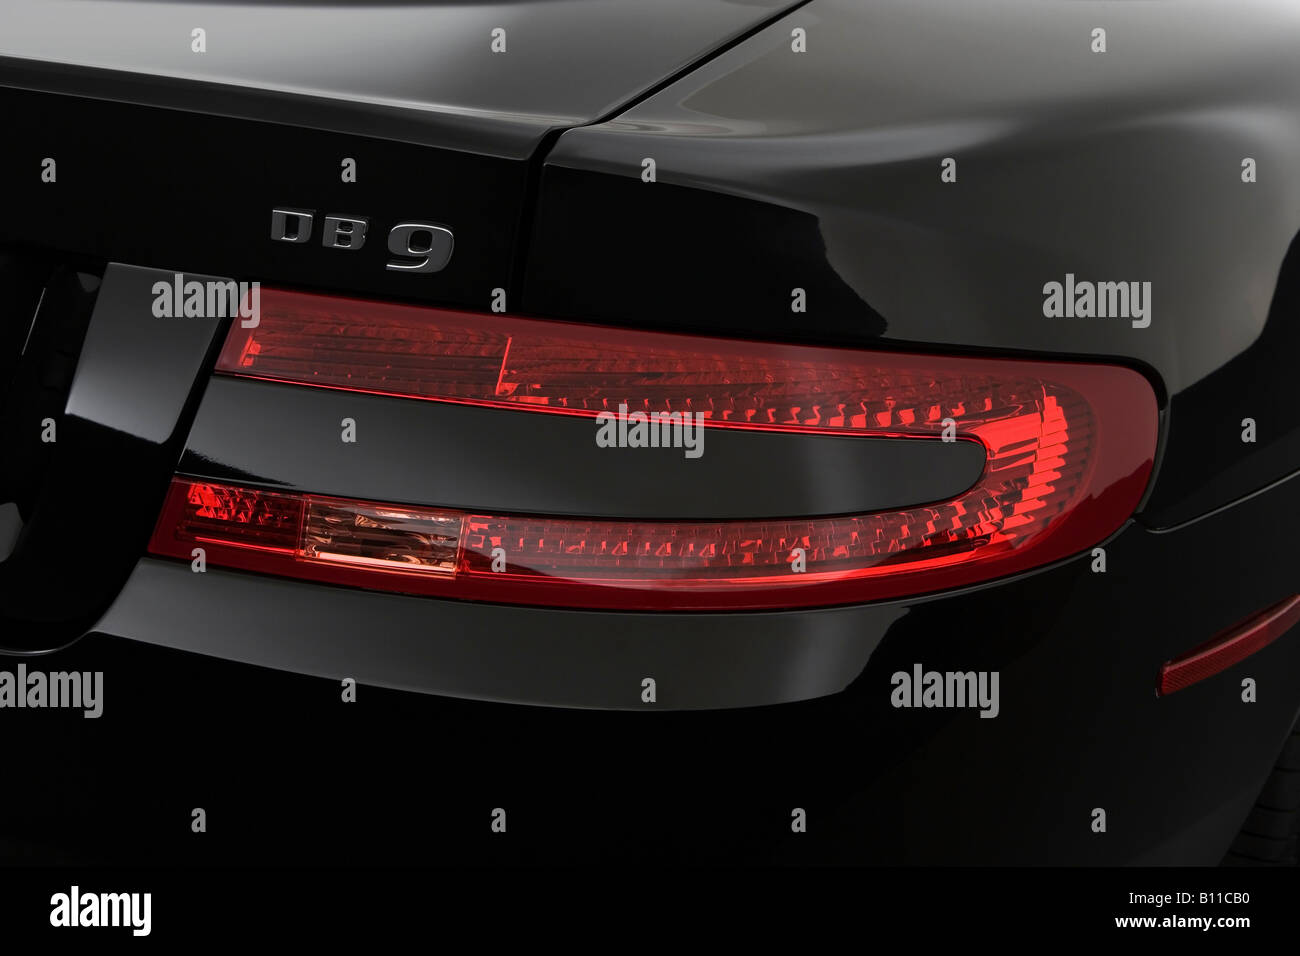 2008 Aston Martin Db9 In Black Tail Light Stock Photo 17856692